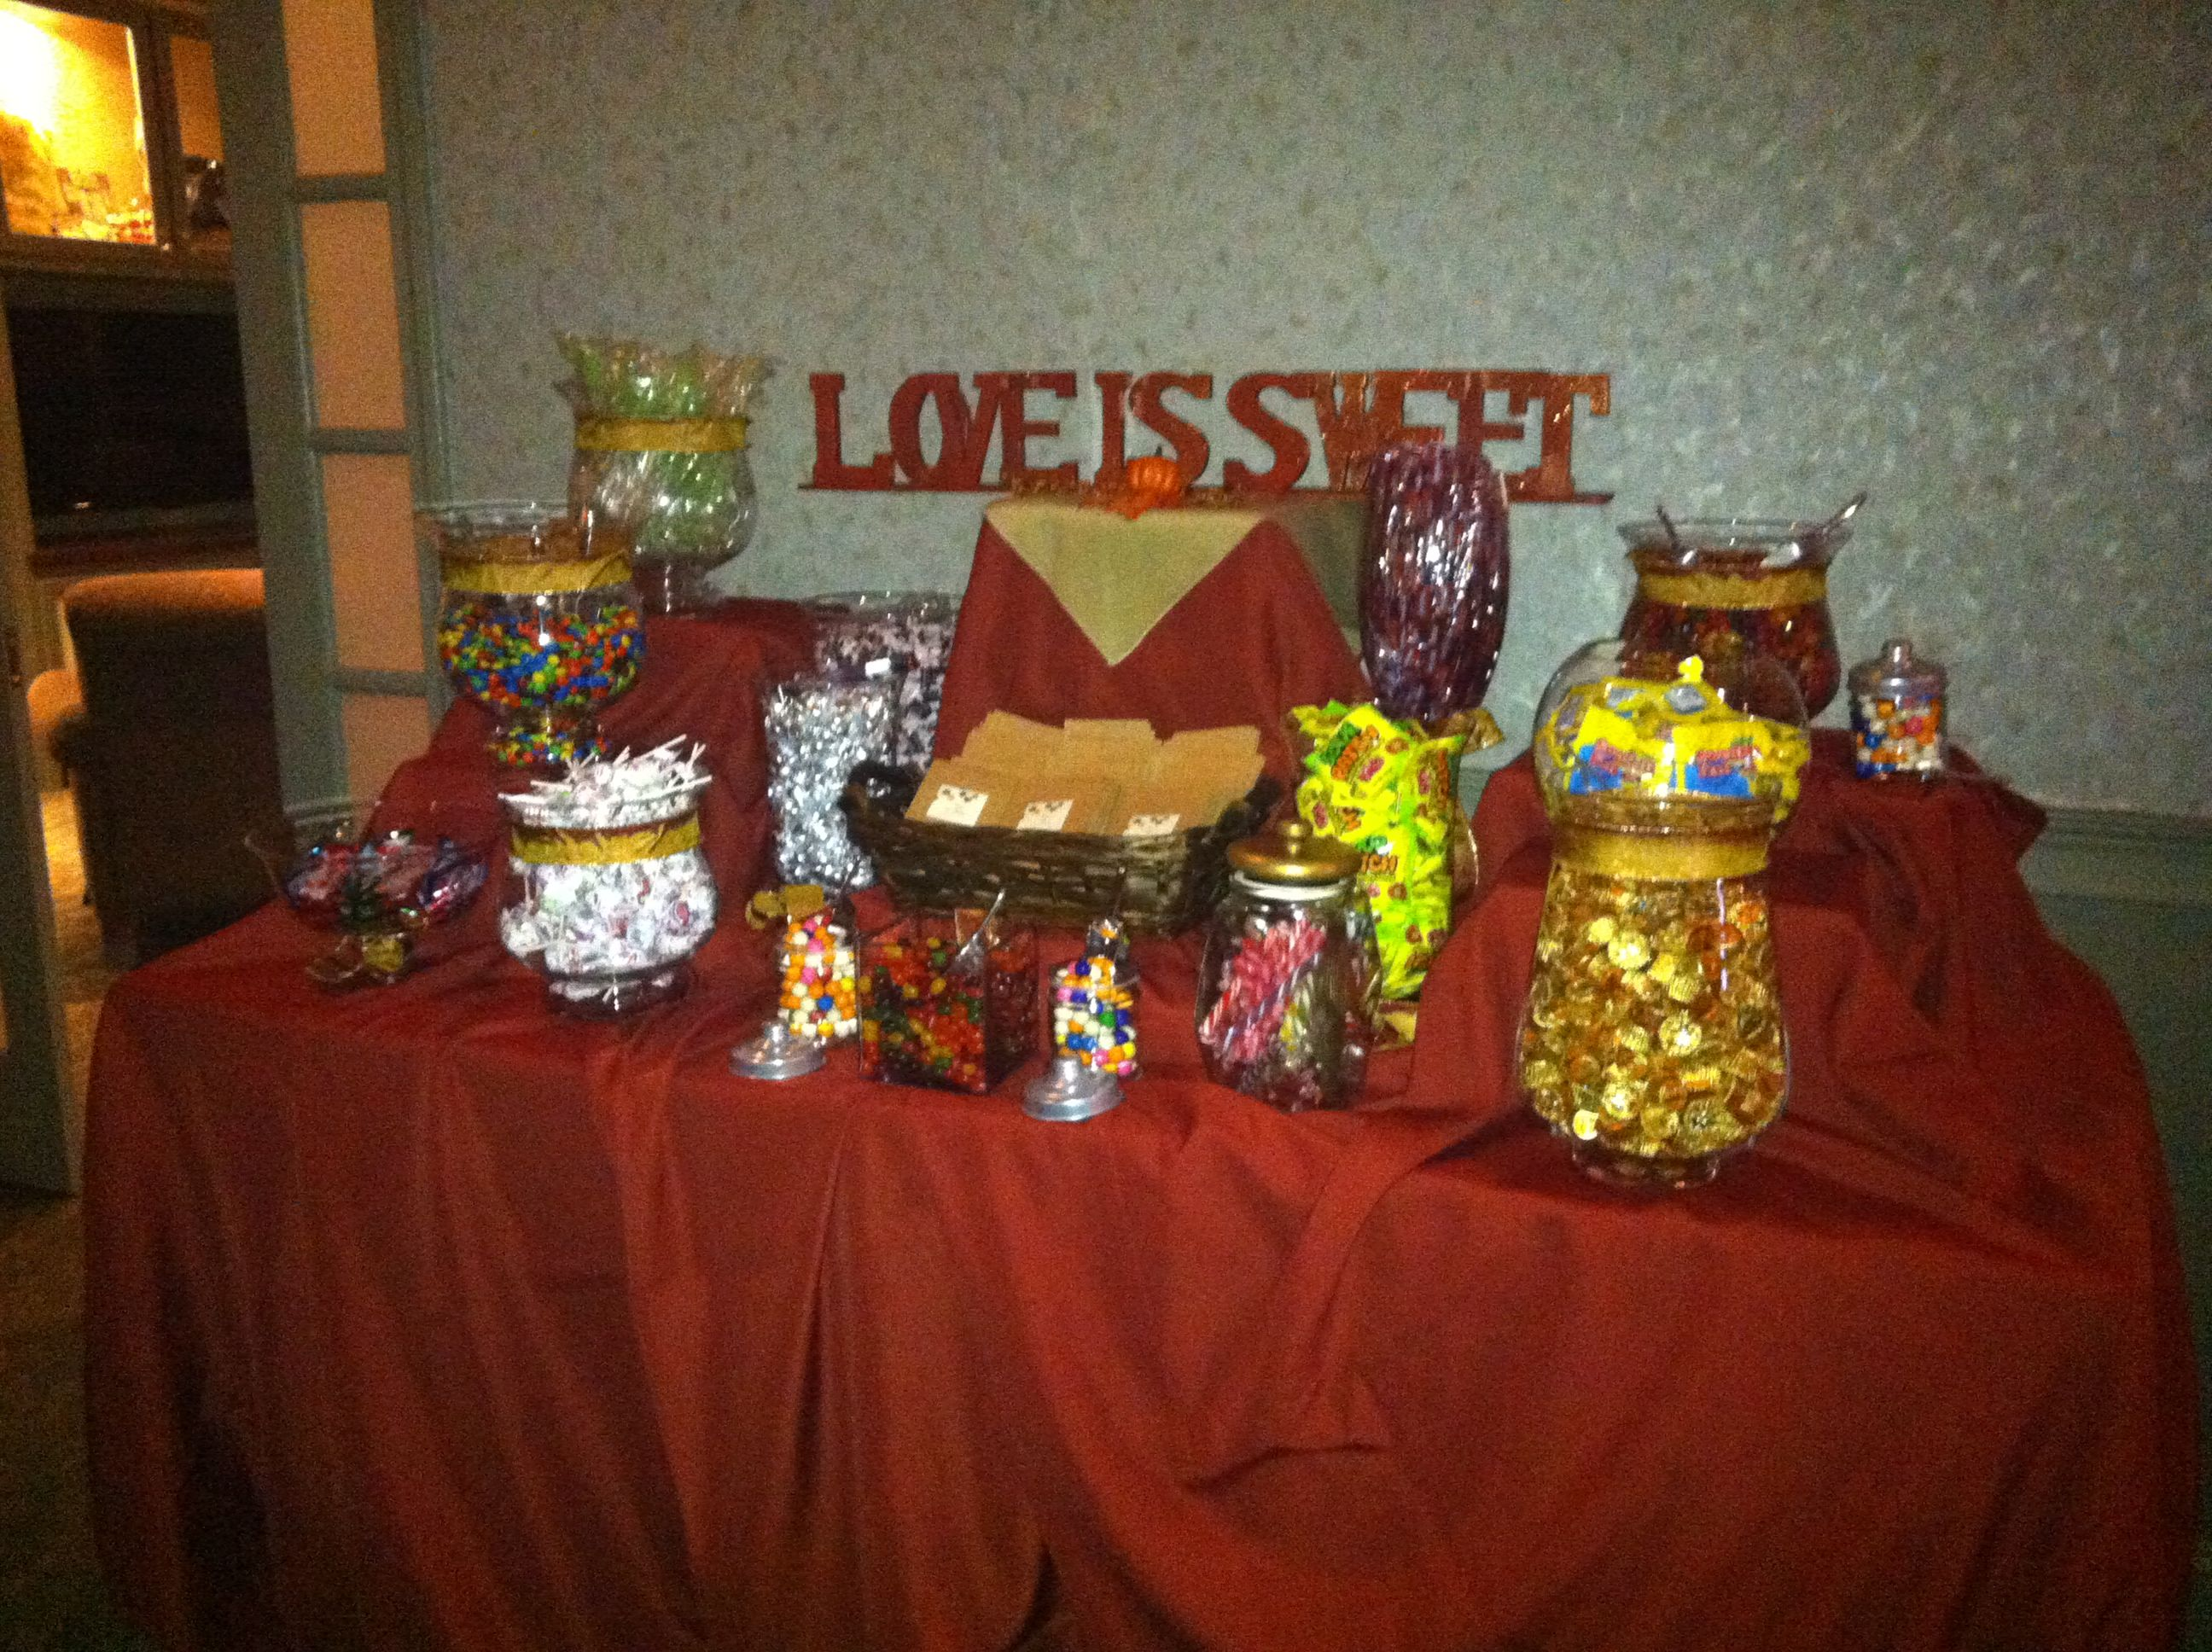 108 best Candy Buffet MISTAKES! images on Pinterest | Caramel ...